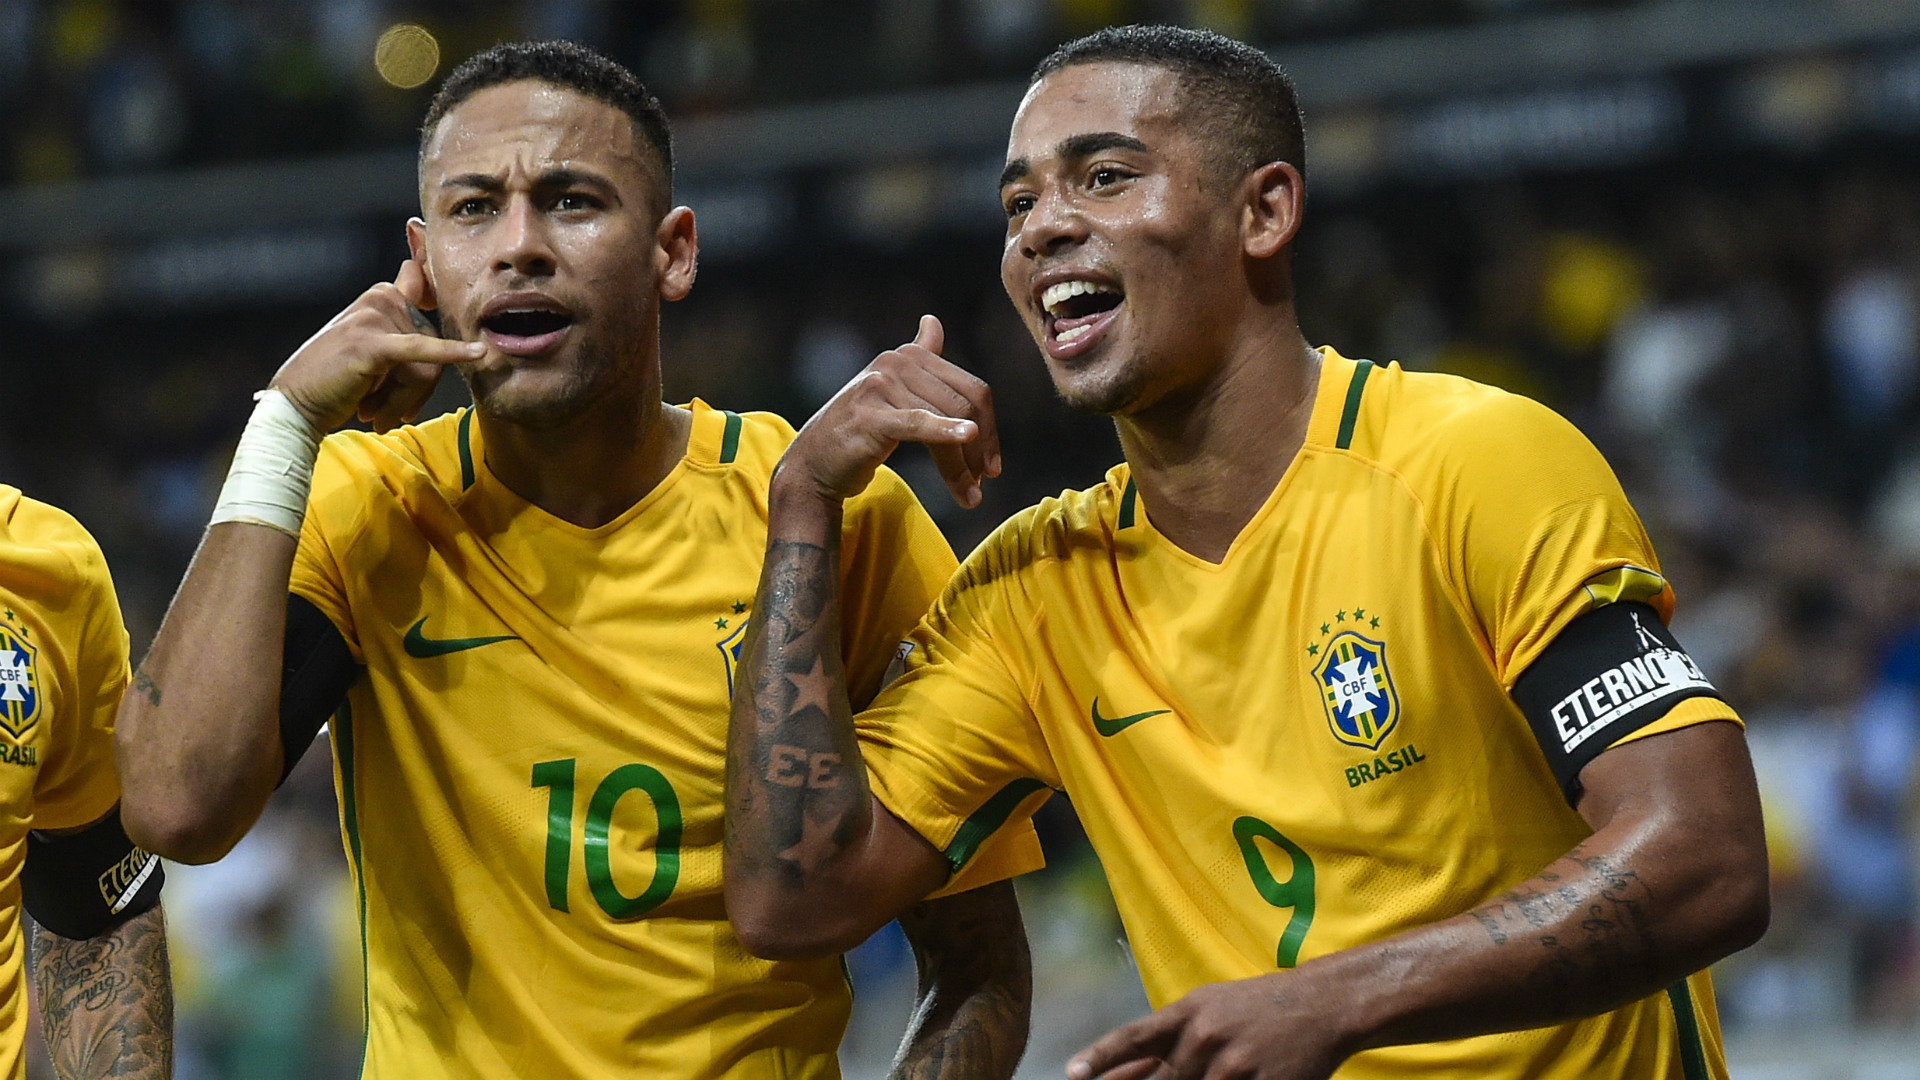 Gabriel Jesus out to follow in Neymar's footsteps as he targets 100 Brazil caps & goals record